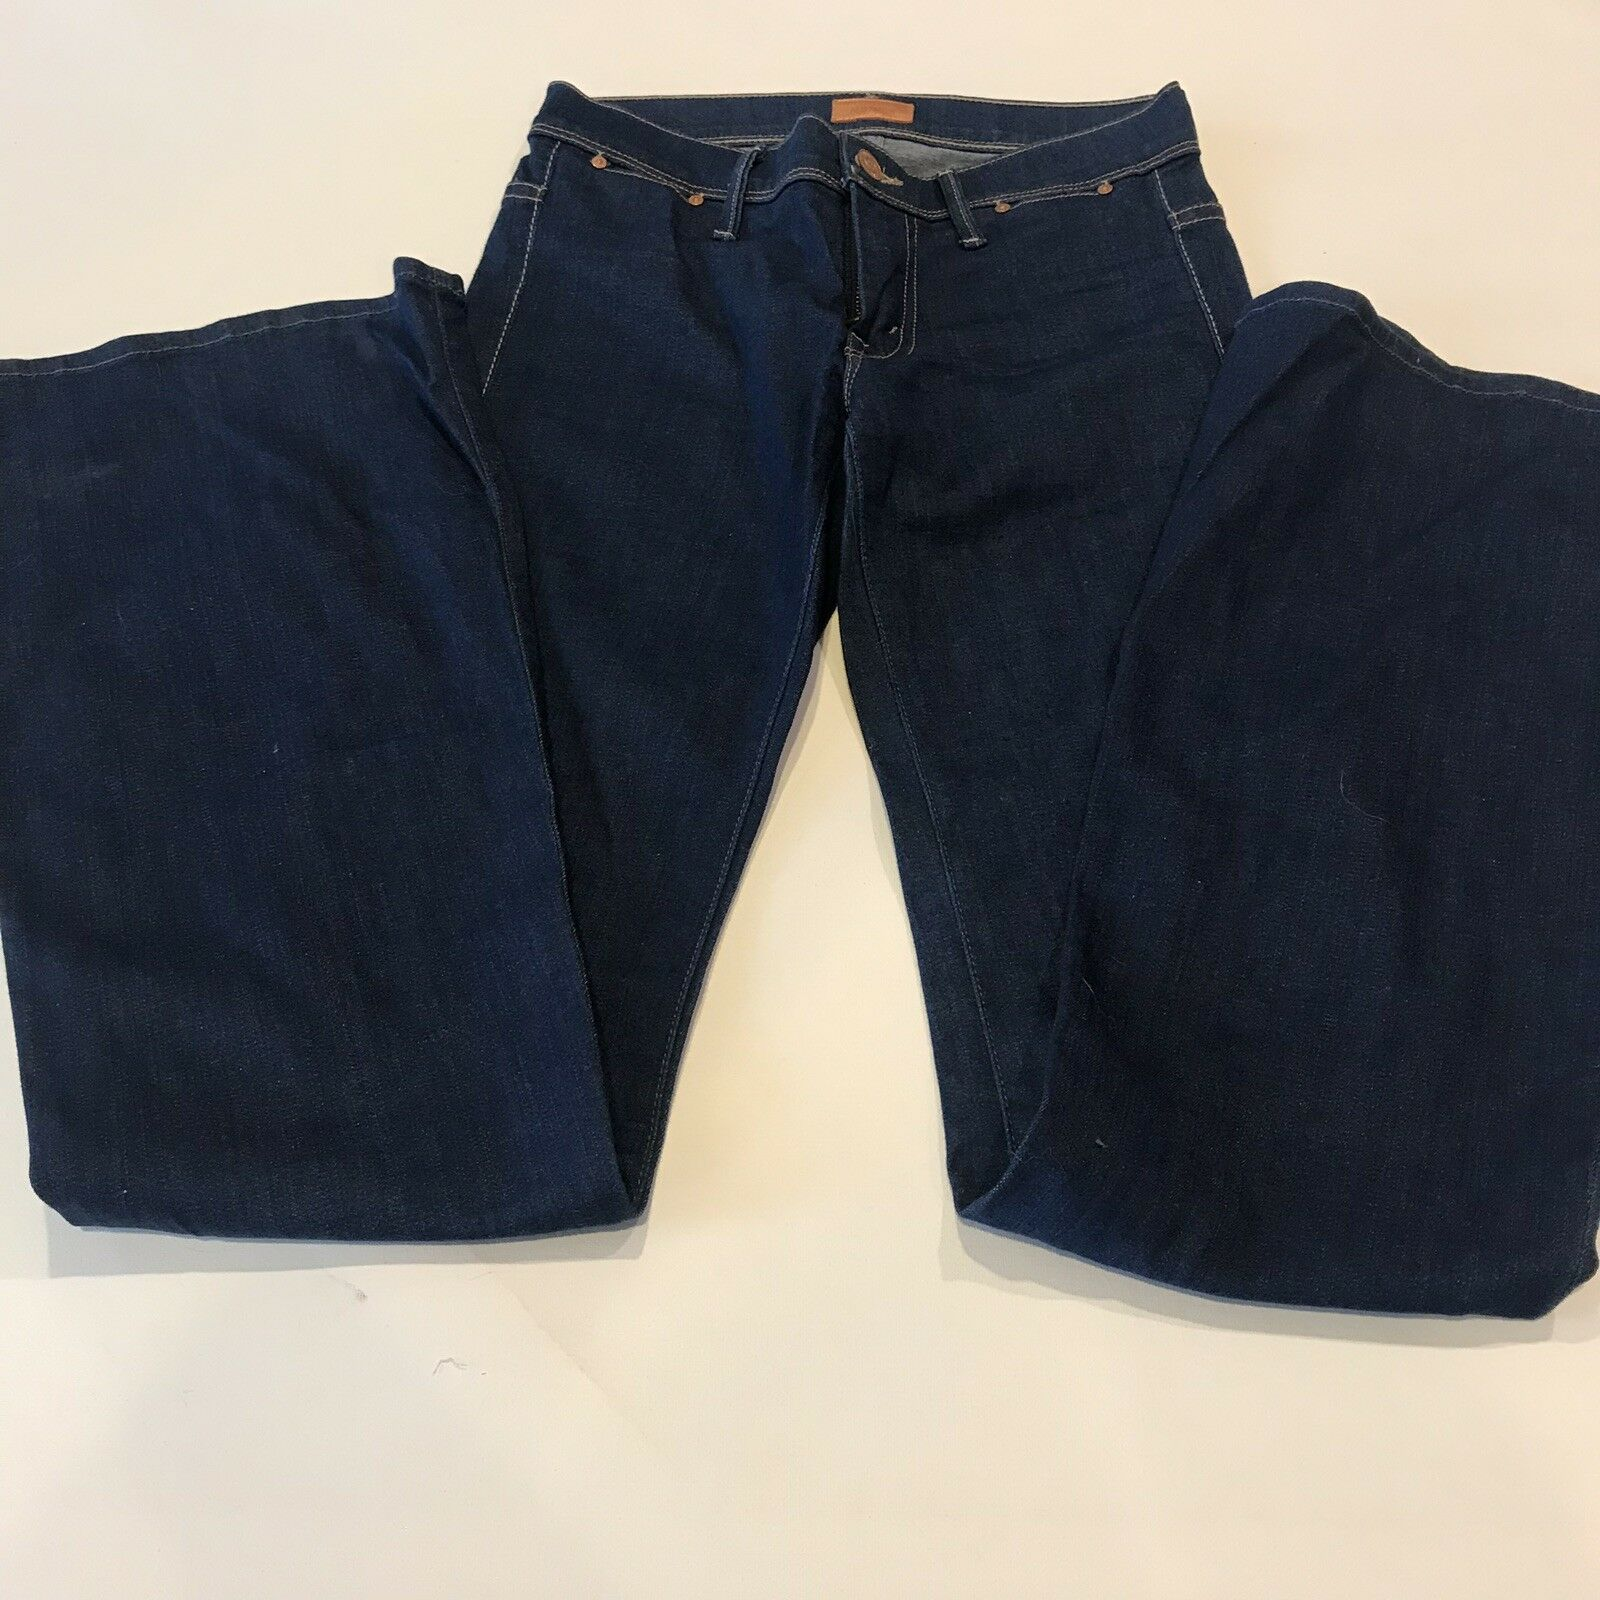 Mother Womens Jeans 24 The Curfew Dark Wash Flare Bells bluee Skies and Promises